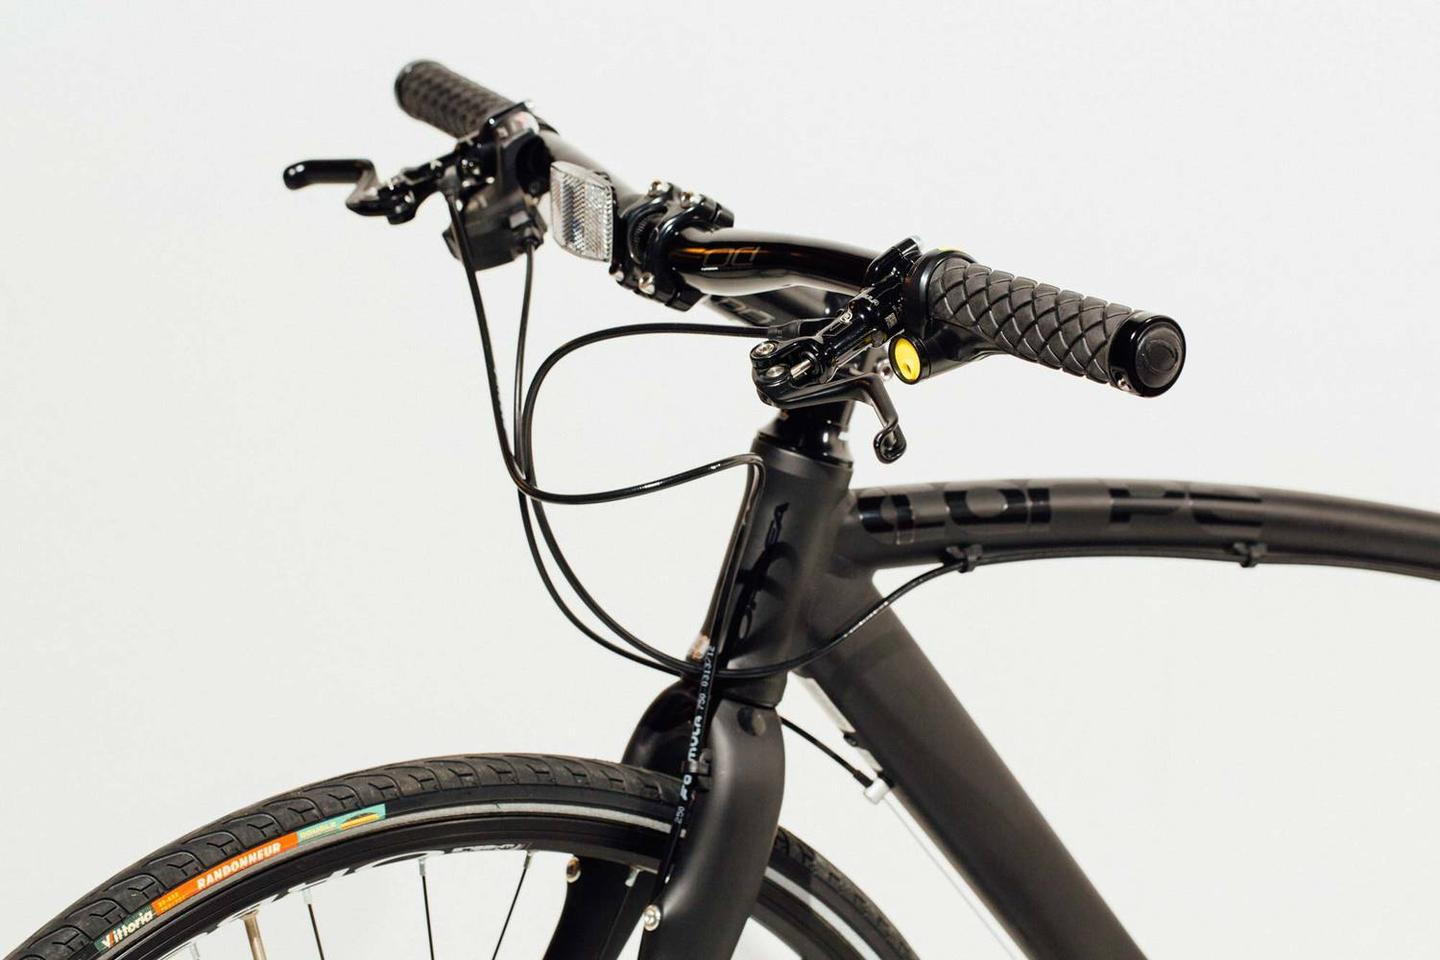 A Sonic Grip-equipped bike, with the siren visible on the left-hand grip